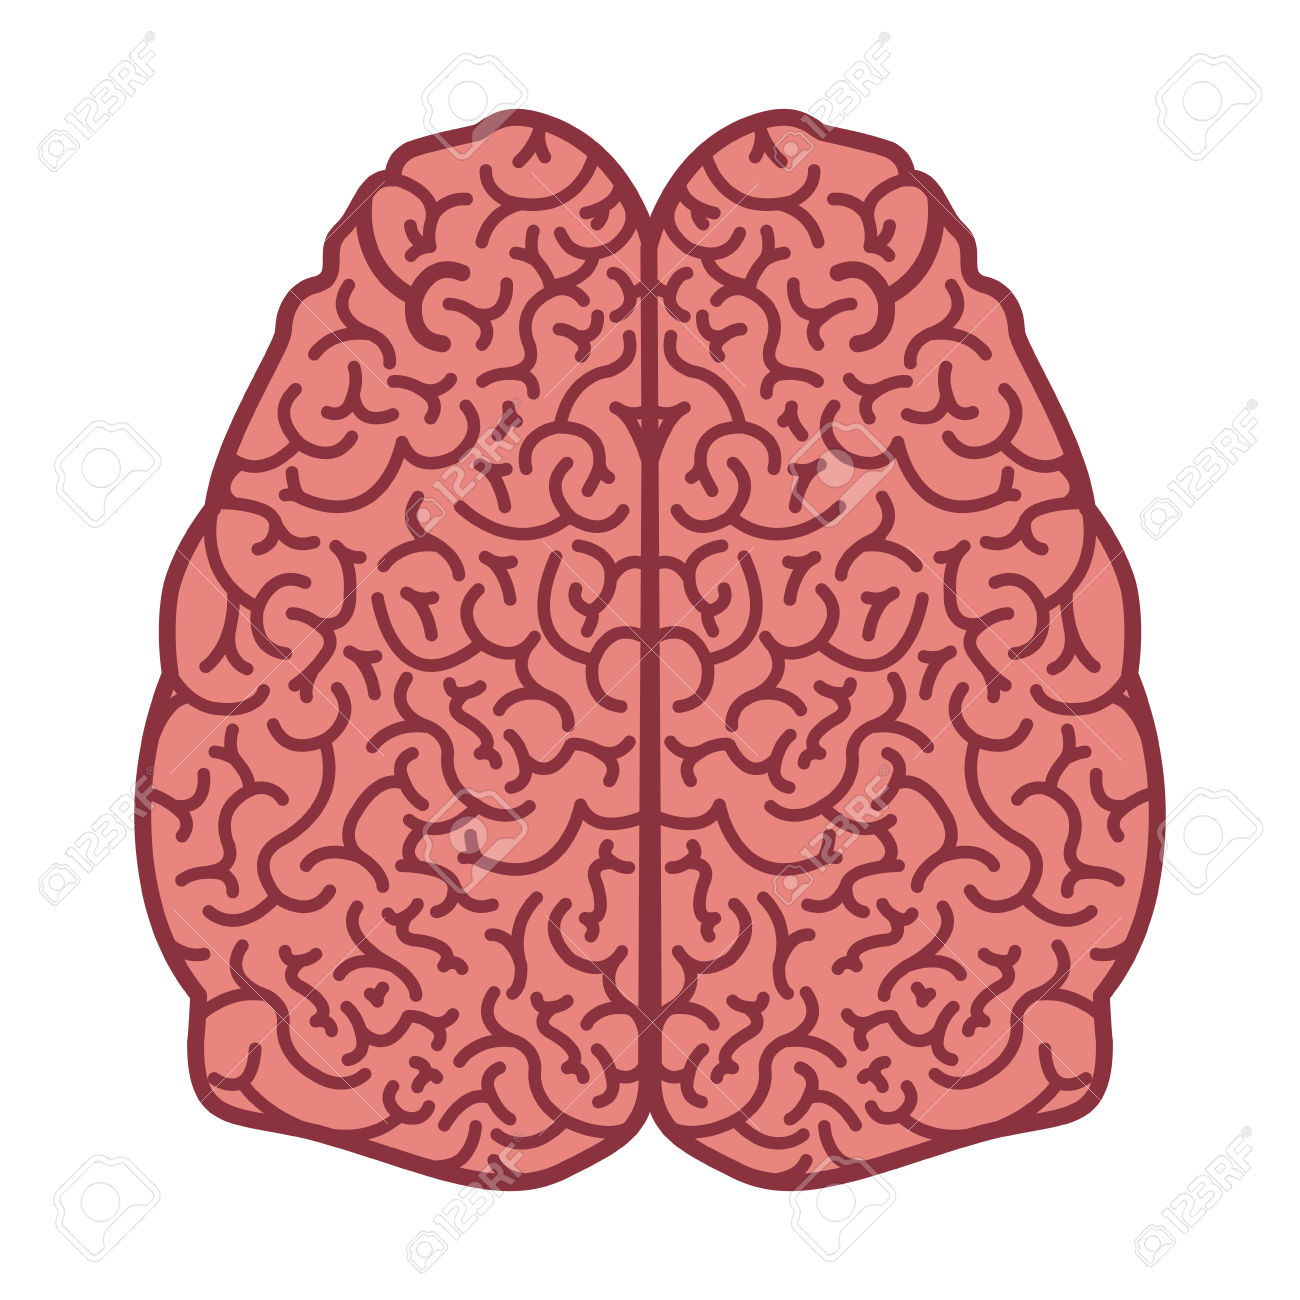 Brain Silhouette Color With Two Cerebral Hemispheres Vector.